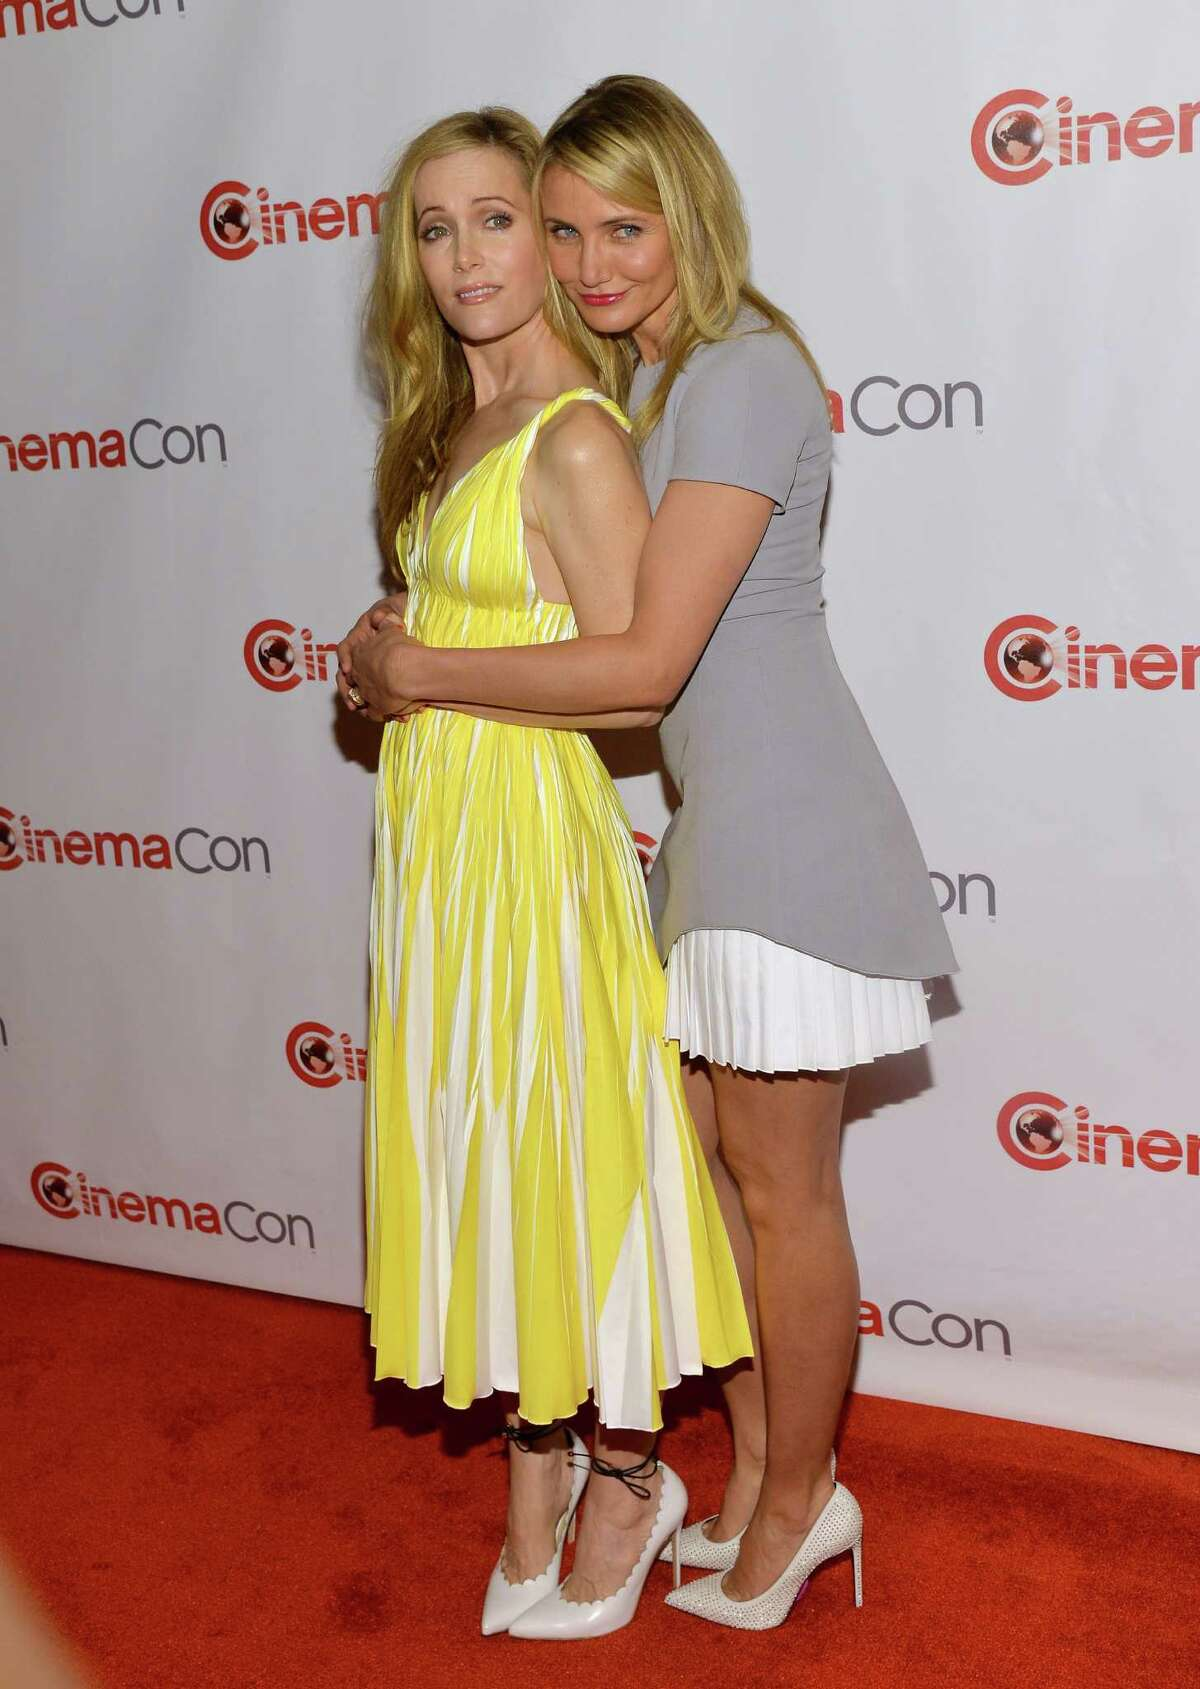 Actresses Leslie Mann (L) and Cameron Diaz attend 20th Century Fox's Special Presentation Highlighting Its Future Release Schedule during CinemaCon, the official convention of the National Association of Theatre Owners, at The Colosseum at Caesars Palace on March 27, 2014 in Las Vegas, Nevada.